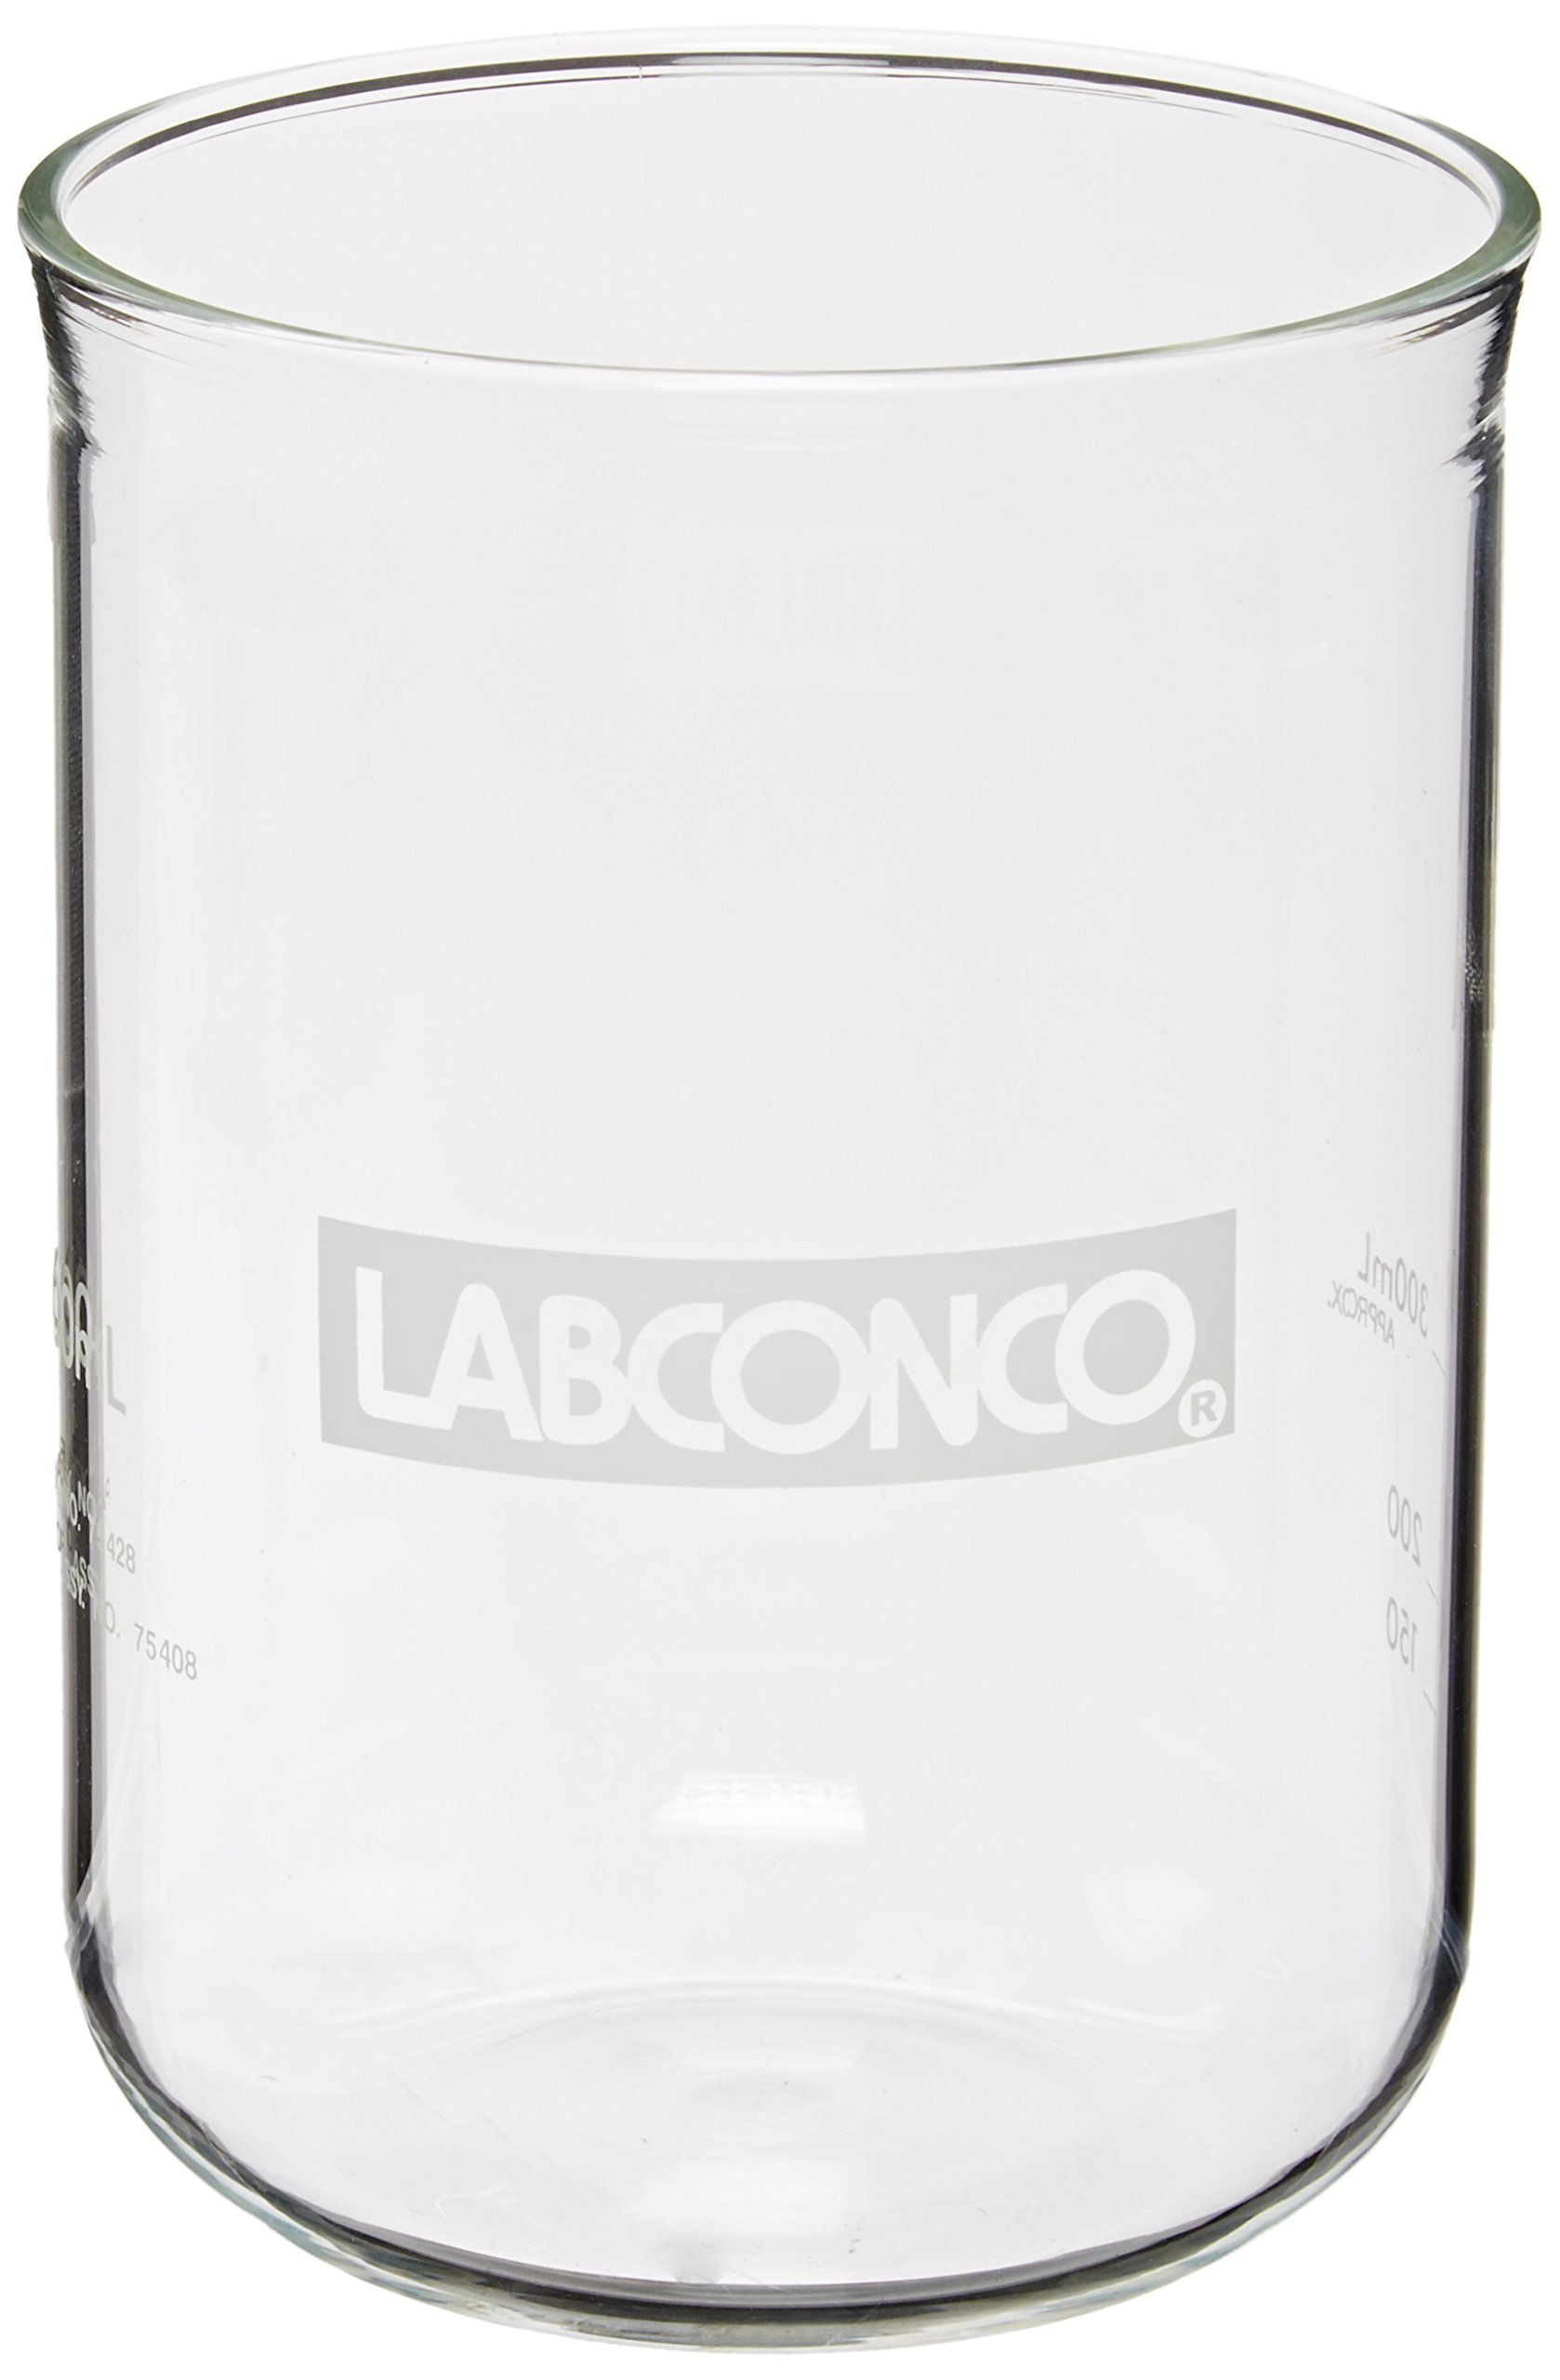 Labconco 7542800 Borosilicate Glass Fast-Freeze Flask Bottom, 600ml Volume by Labconco